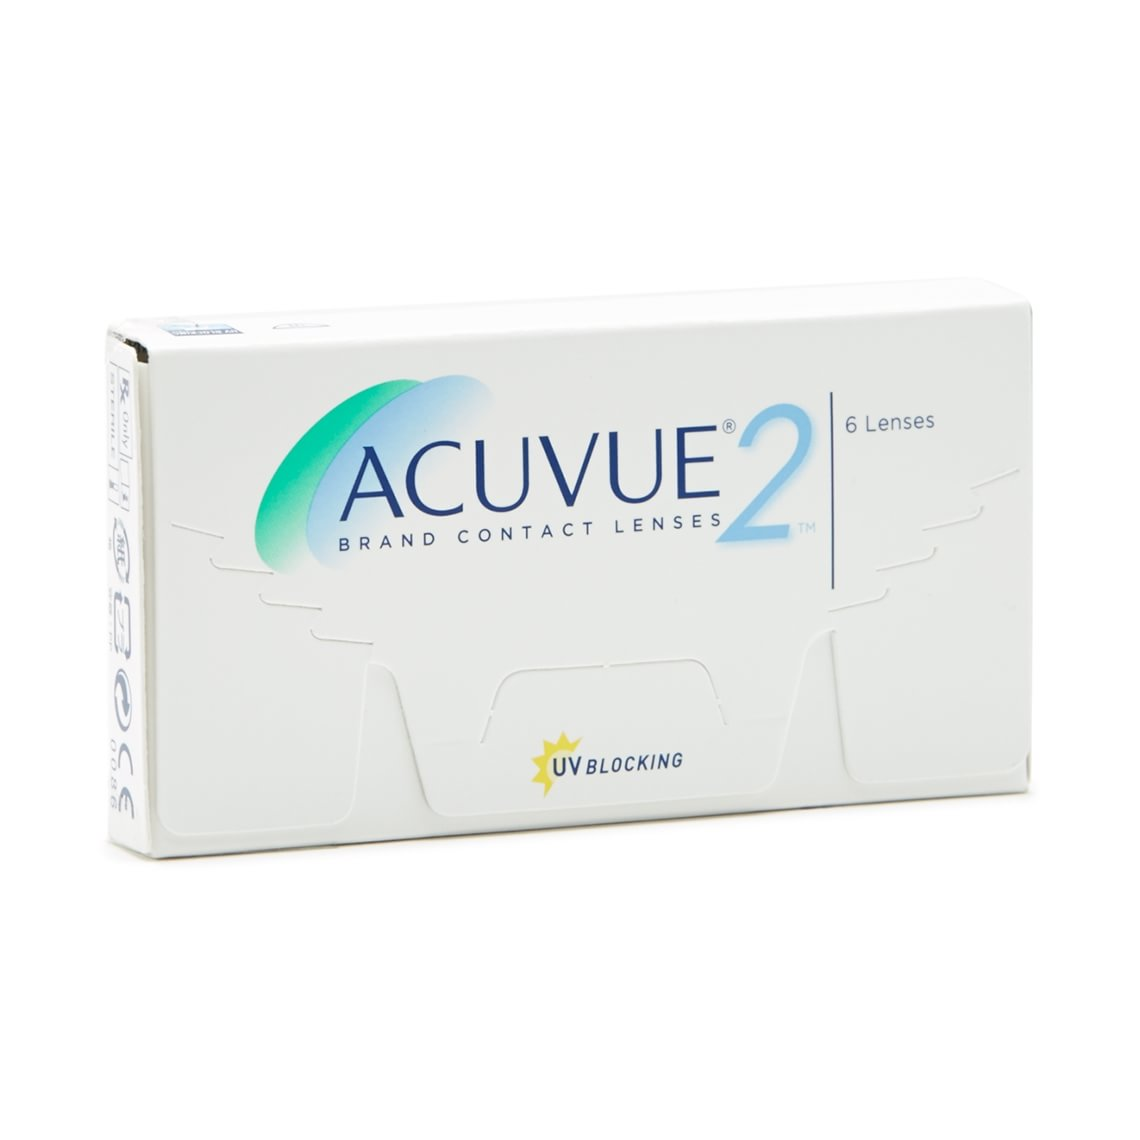 Acuvue 2 6 st/box